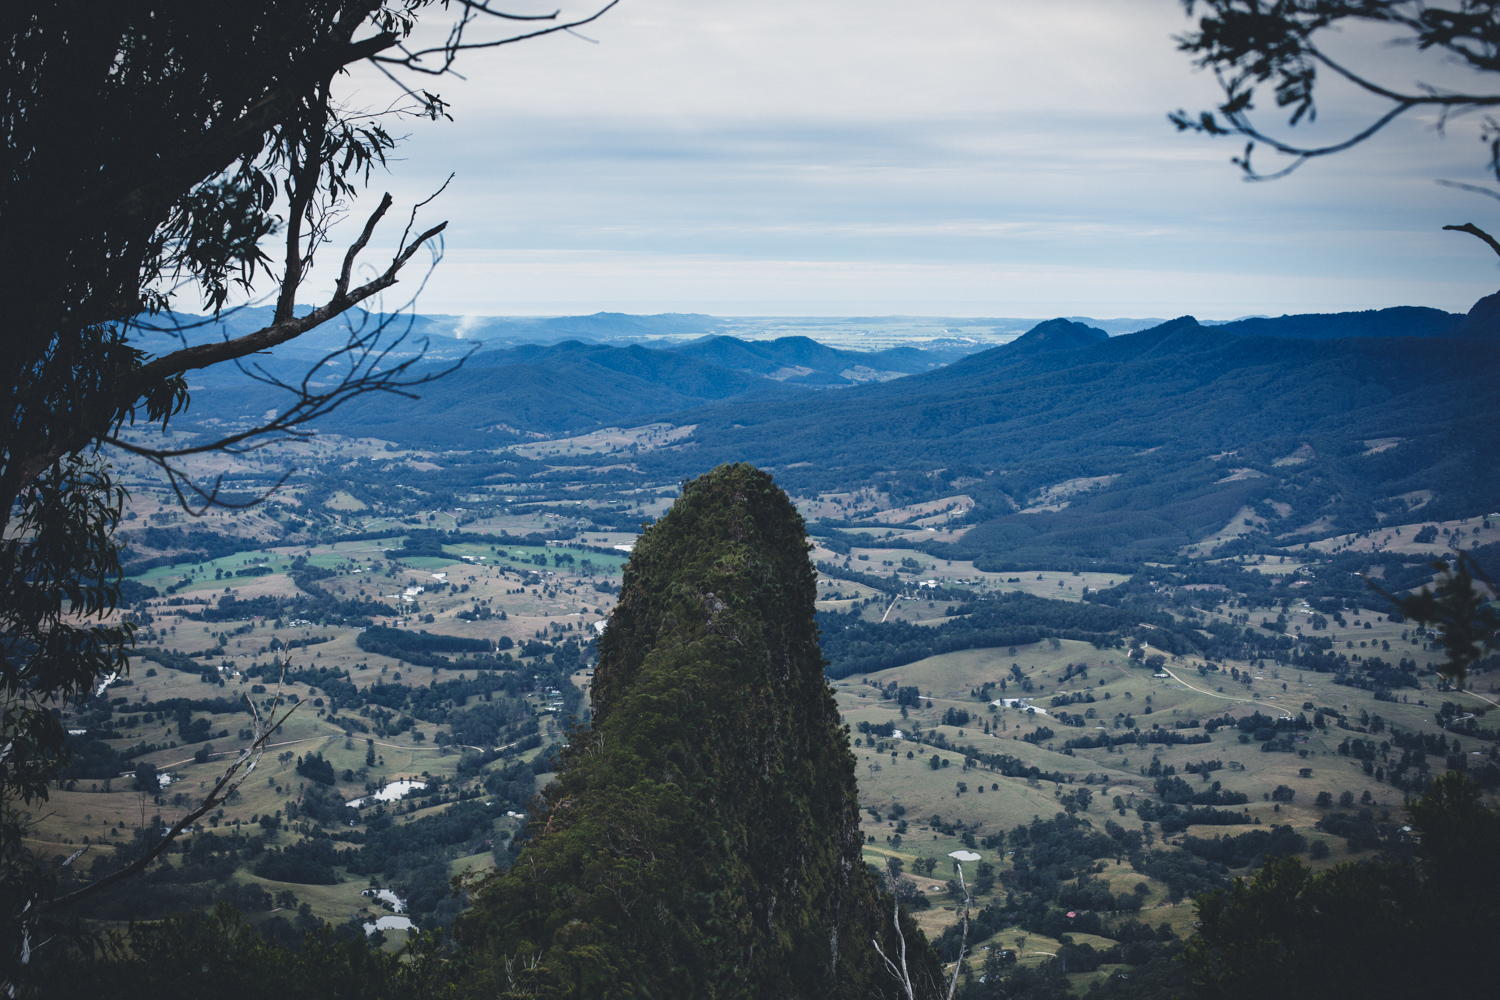 The Pinnacle Border Ranges National Park